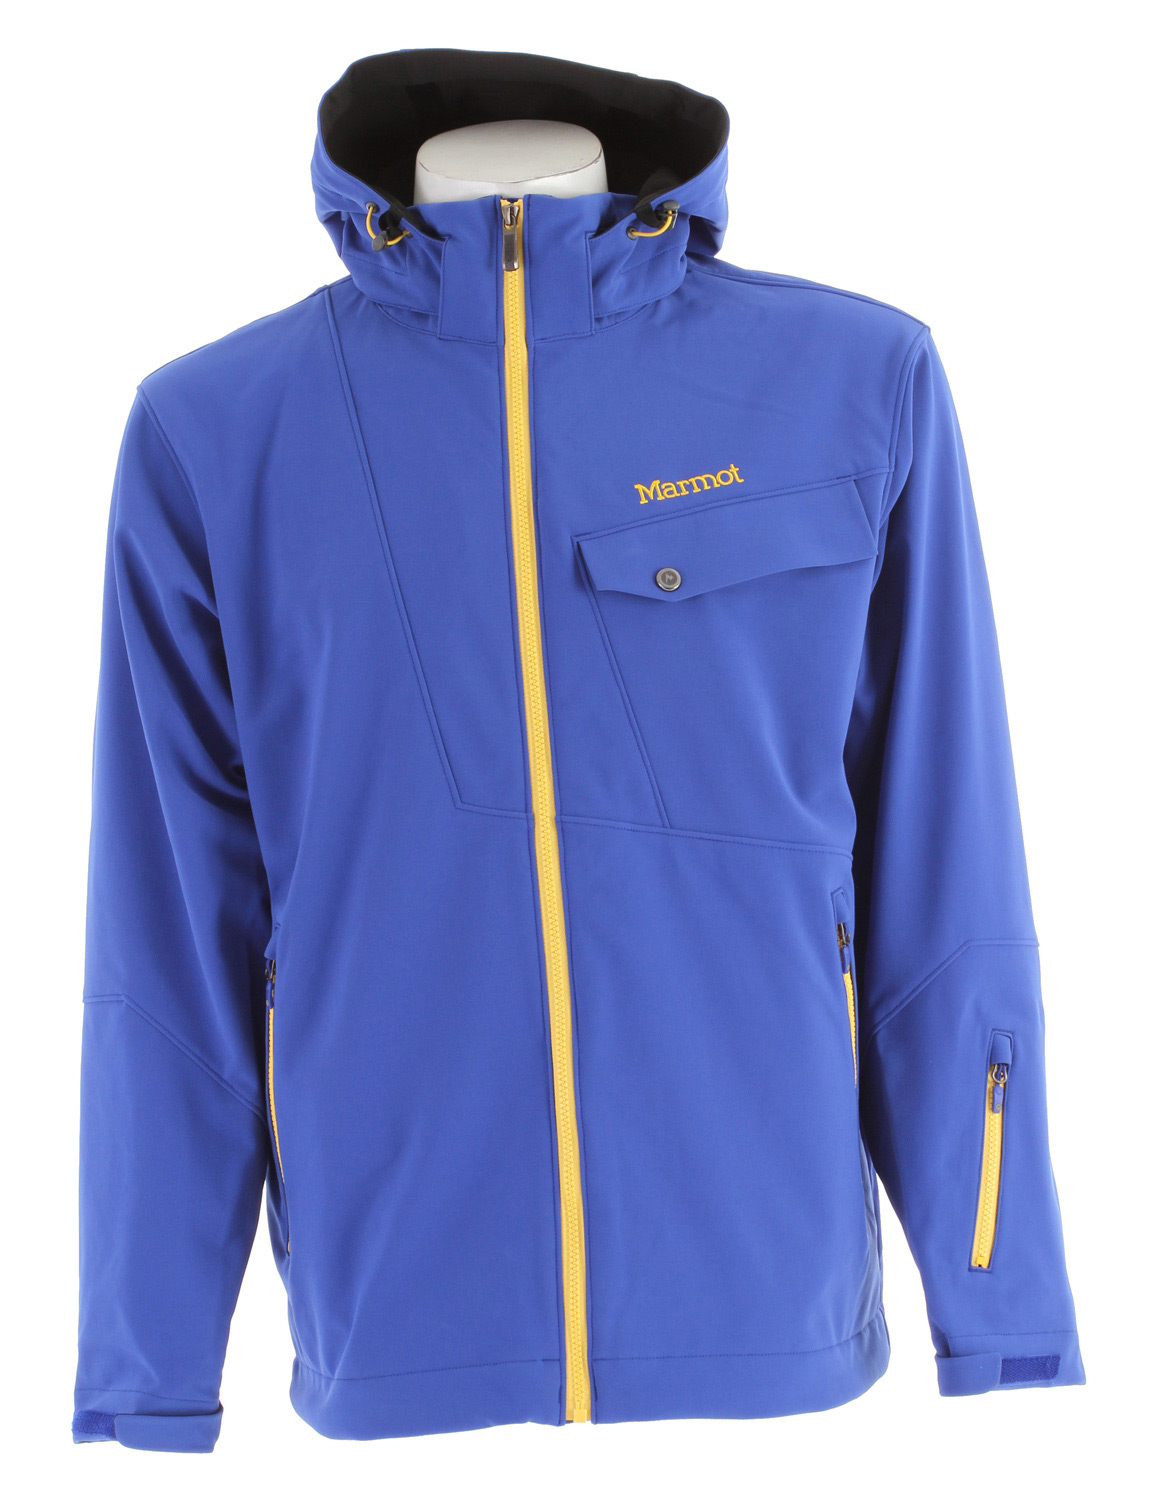 "Ski Key Features of the Marmot Erial Ski Jacket: Weight 2lb 4oz (1021g) Materials Softshell Bonded 88% Nylon, 12% Elastane 8.1 oz/yd Marmot M1 Softshell Windproof, Waterproof, and Breathable 4 way Stretch Fabric Zip-off Storm Hood with Laminated Brim Zippered Handwarmer Pockets Flapped Chest Pocket with Zipper Zippered Waist Pass Pocket Zip-off Powder Skirt Zippered Sunglass Pocket Mesh Goggle Pocket Elastic Draw Cord Hem DriClime Lined Collar and Chin Guard Adjustable Velcro Cuff 29"" Center Back Length for Size Medium - $204.95"